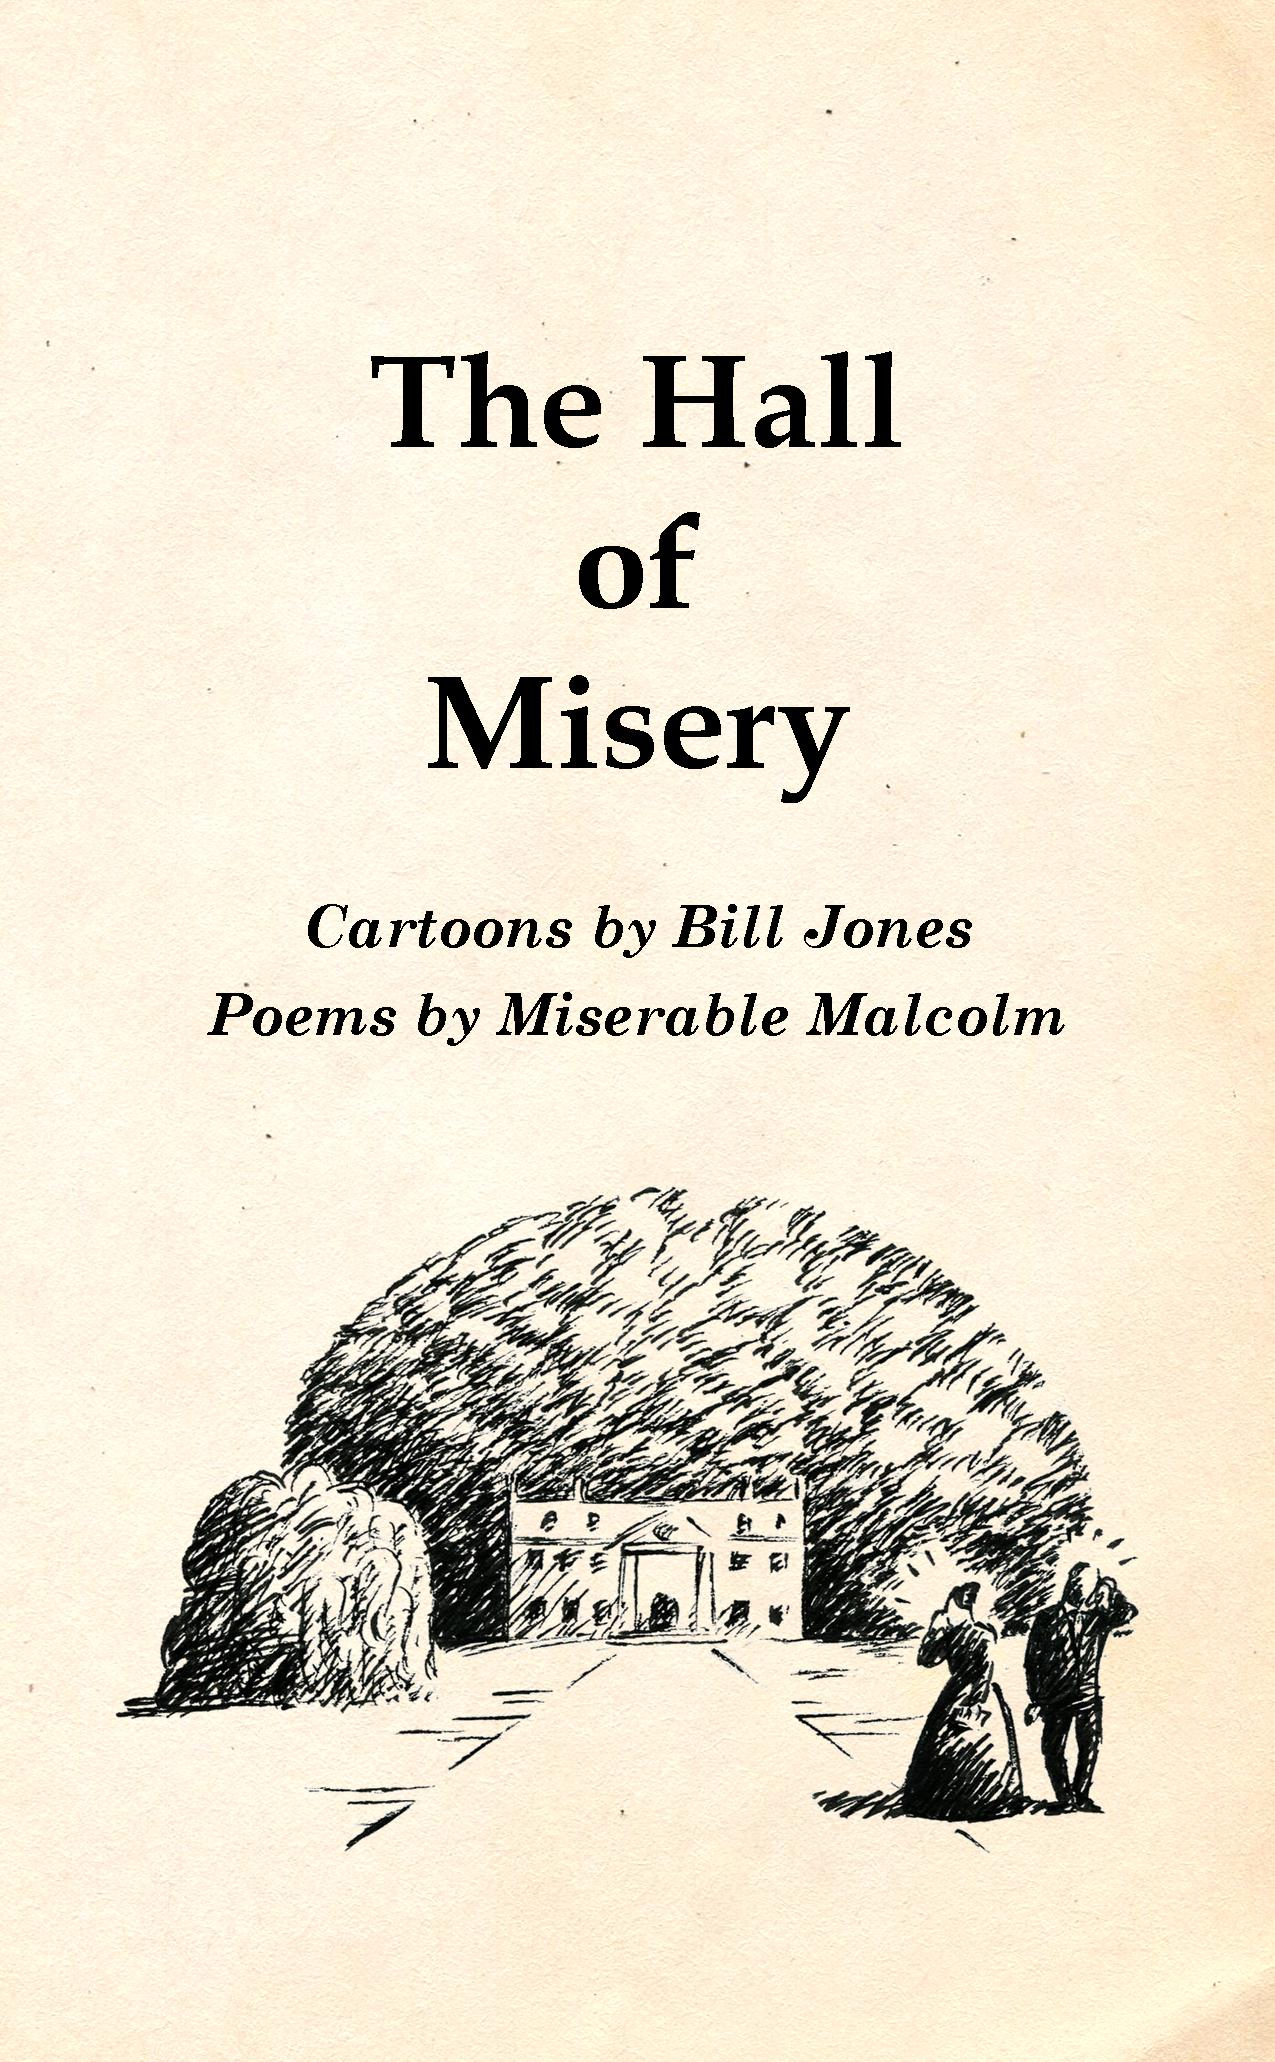 """The hall of misery - A book of gloomy cartoons and comic strips, along with poems by my alter-ego Miserable Malcolm.""""A book to make your heart heavier, with unremitting sorrow, sadness and glum hopelessness on every page.""""52pp. 108mm x 175mm. Self-published in 2015."""